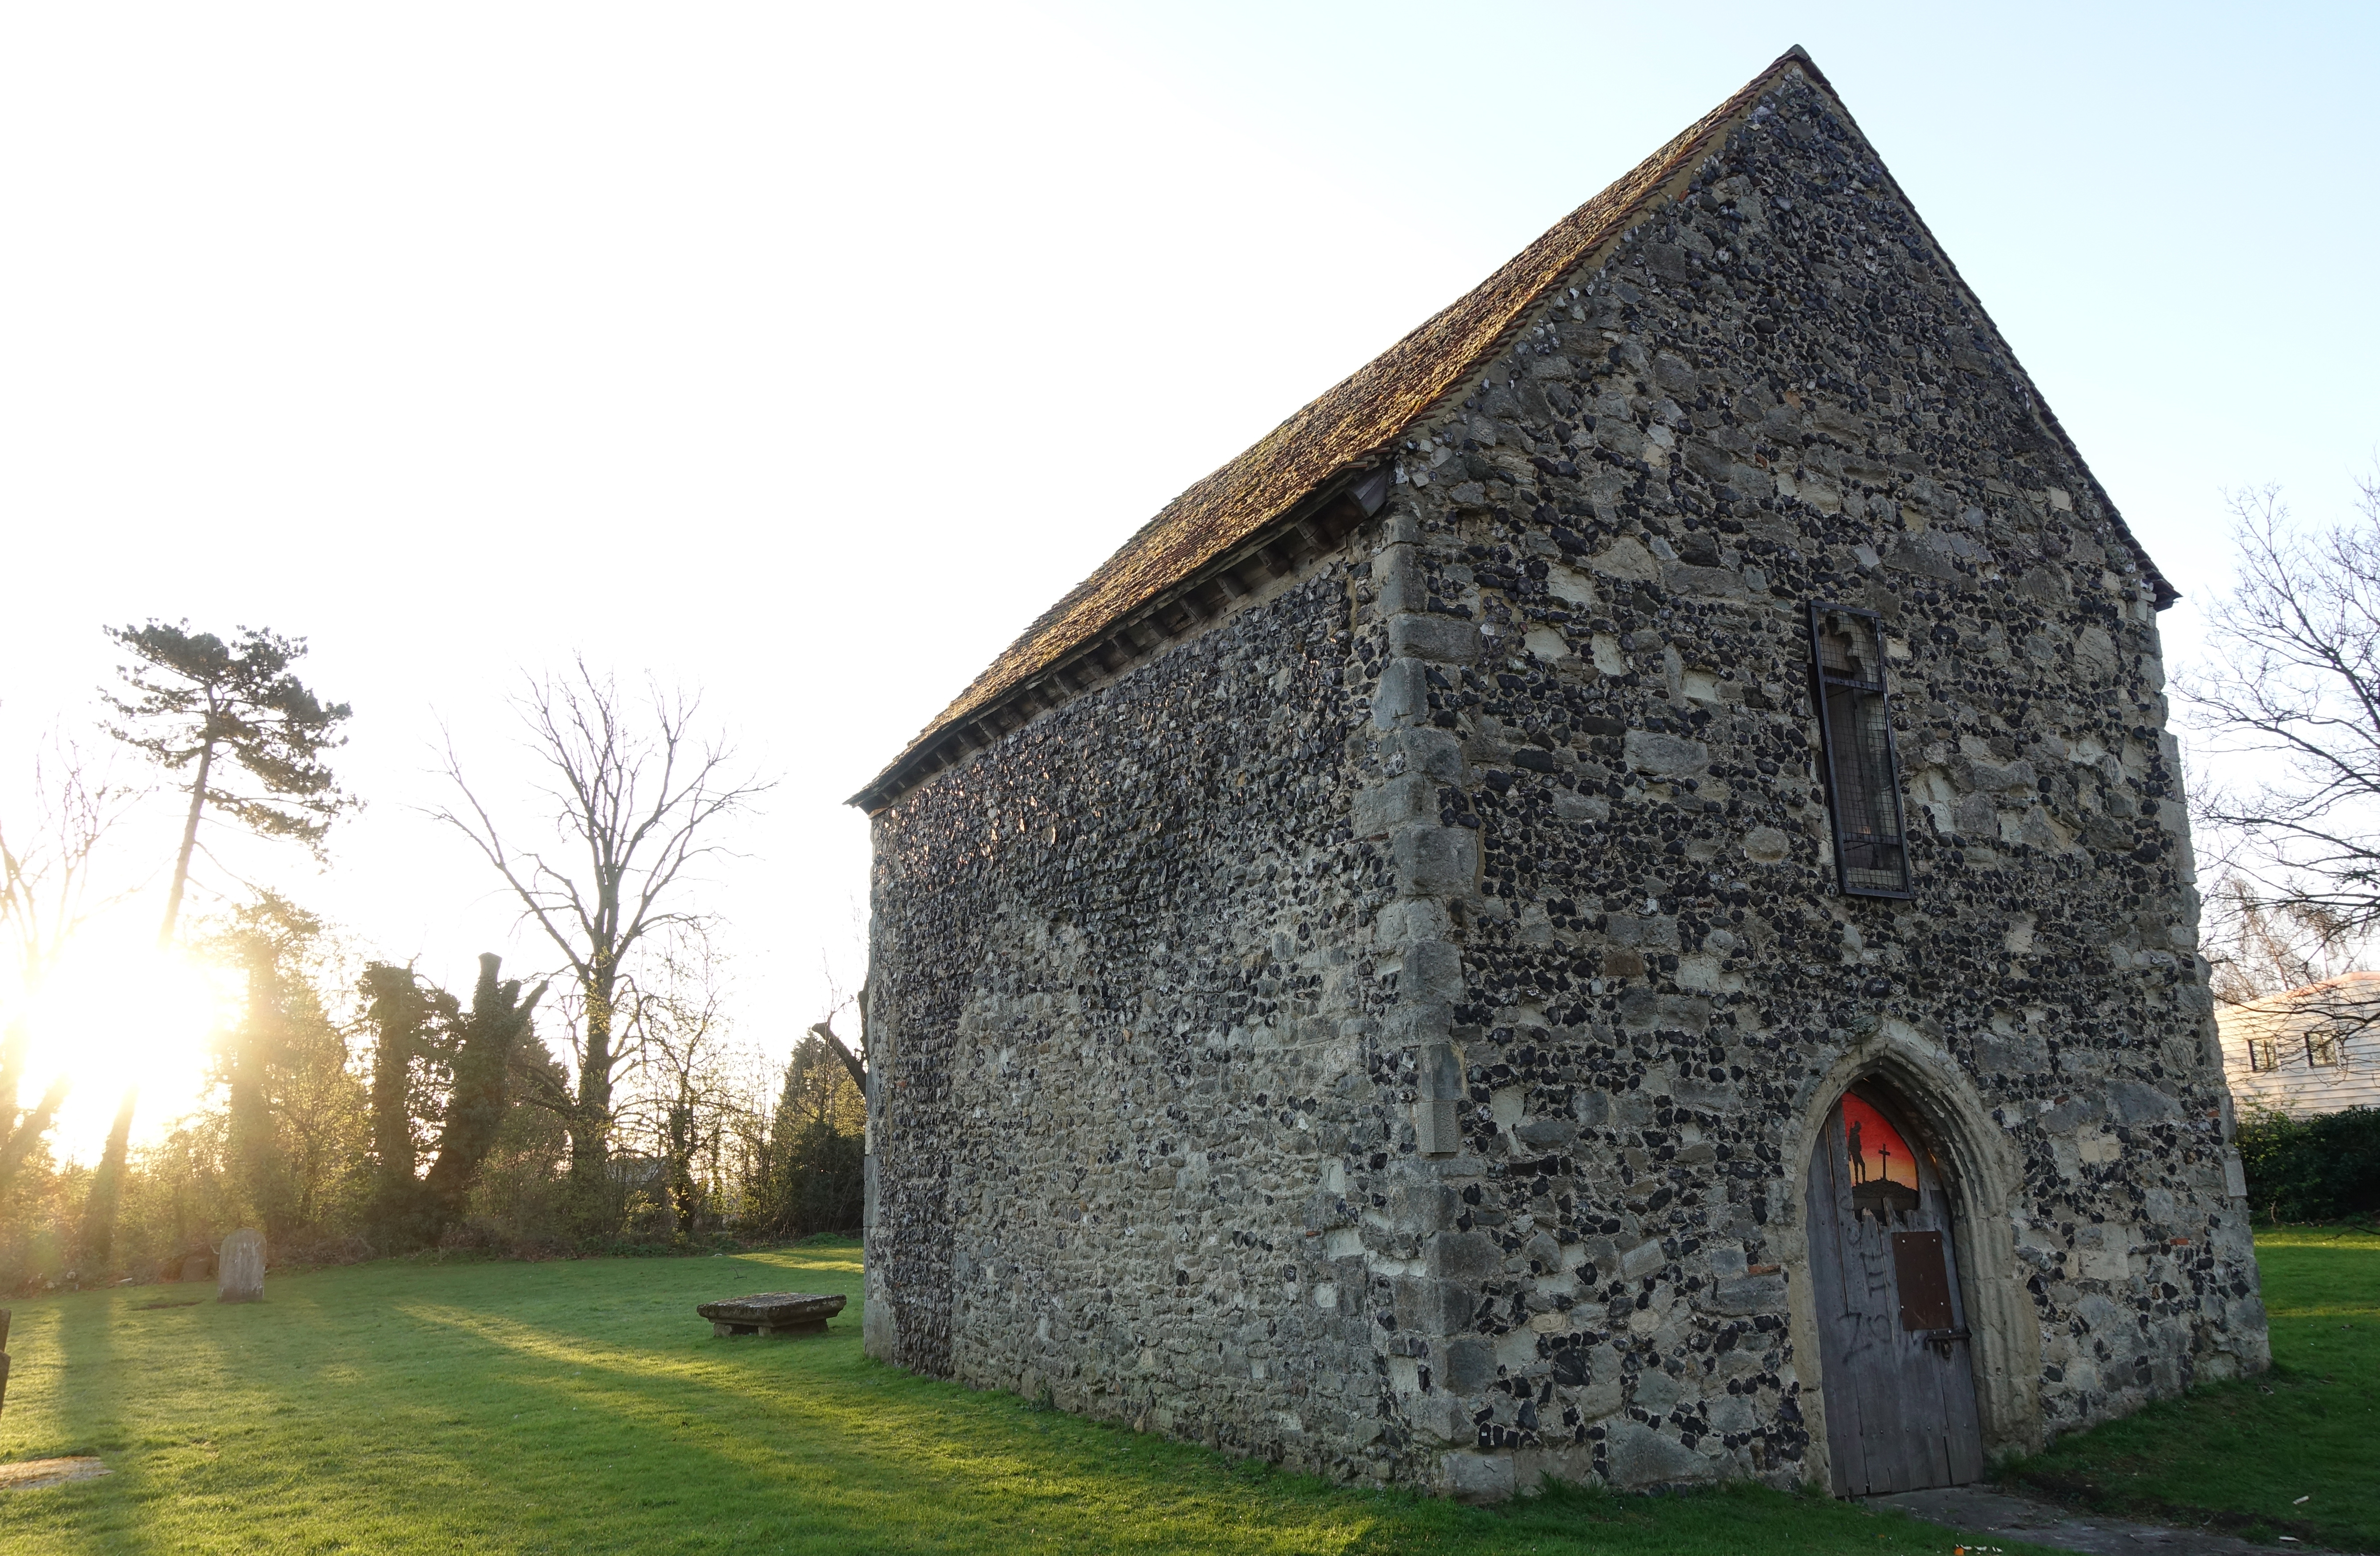 After a long walk through abandoned Sittingbourne and its extensive Business Park, the first thing of any interest is Murston Old Church.